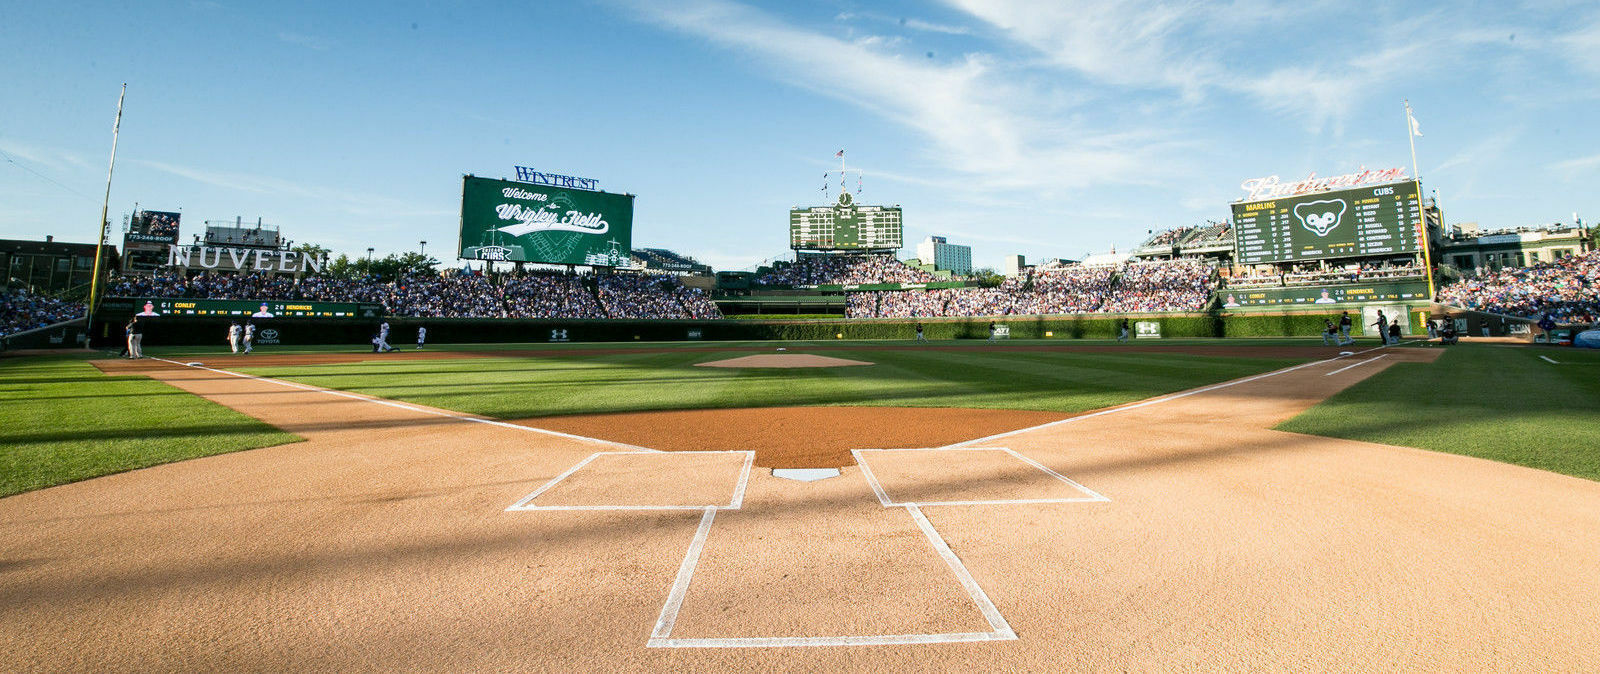 PARKING PASSES ONLY NLCS Tickets: Los Angeles Dodgers at Chicago Cubs (Home Game 2, Series Game 4)